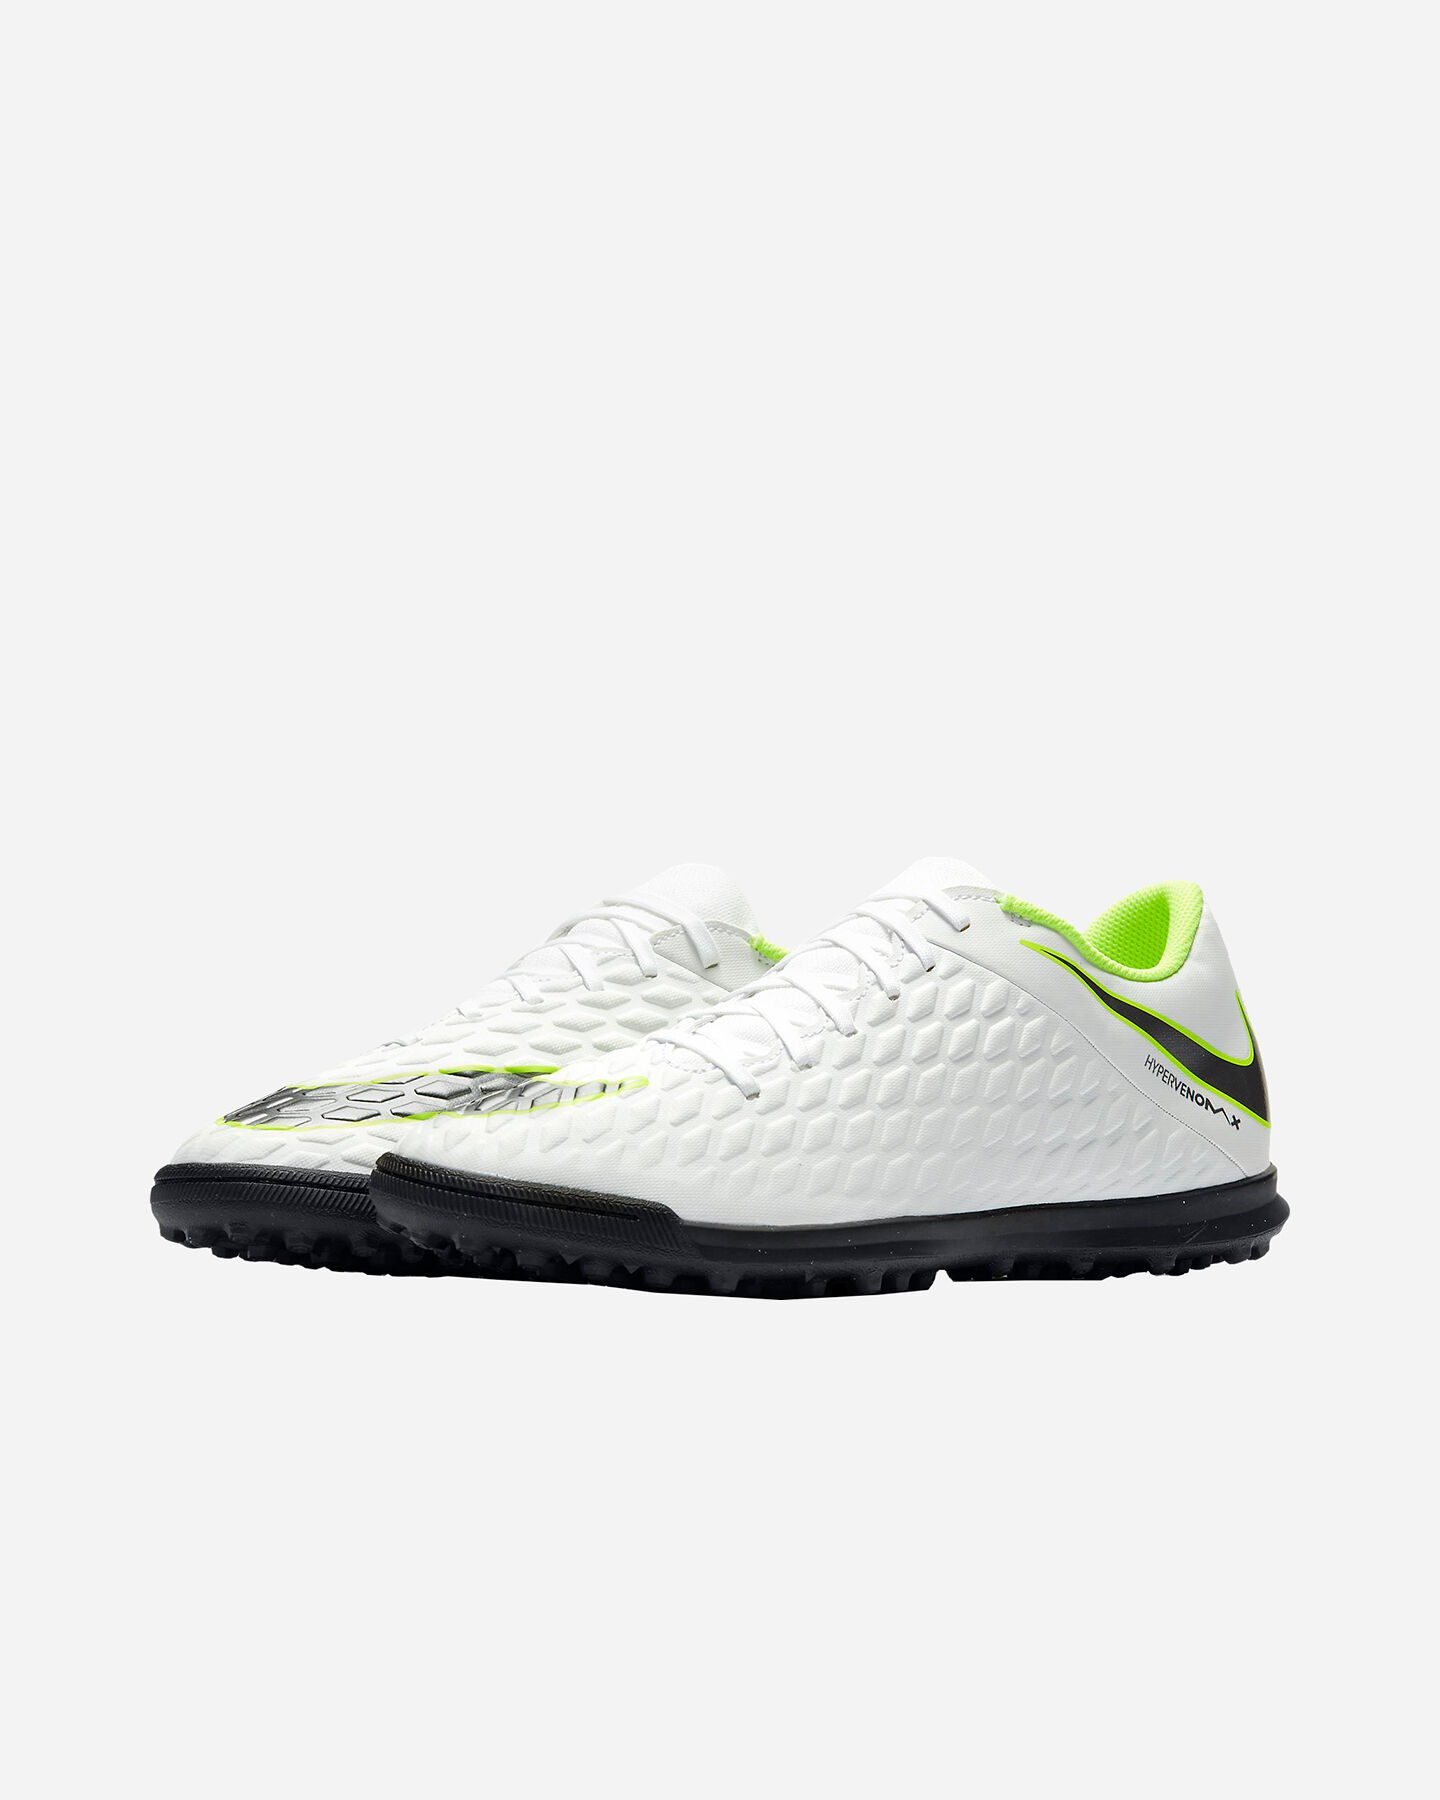 HYPERVENOM PHANTOMX 3 CLUB TF M